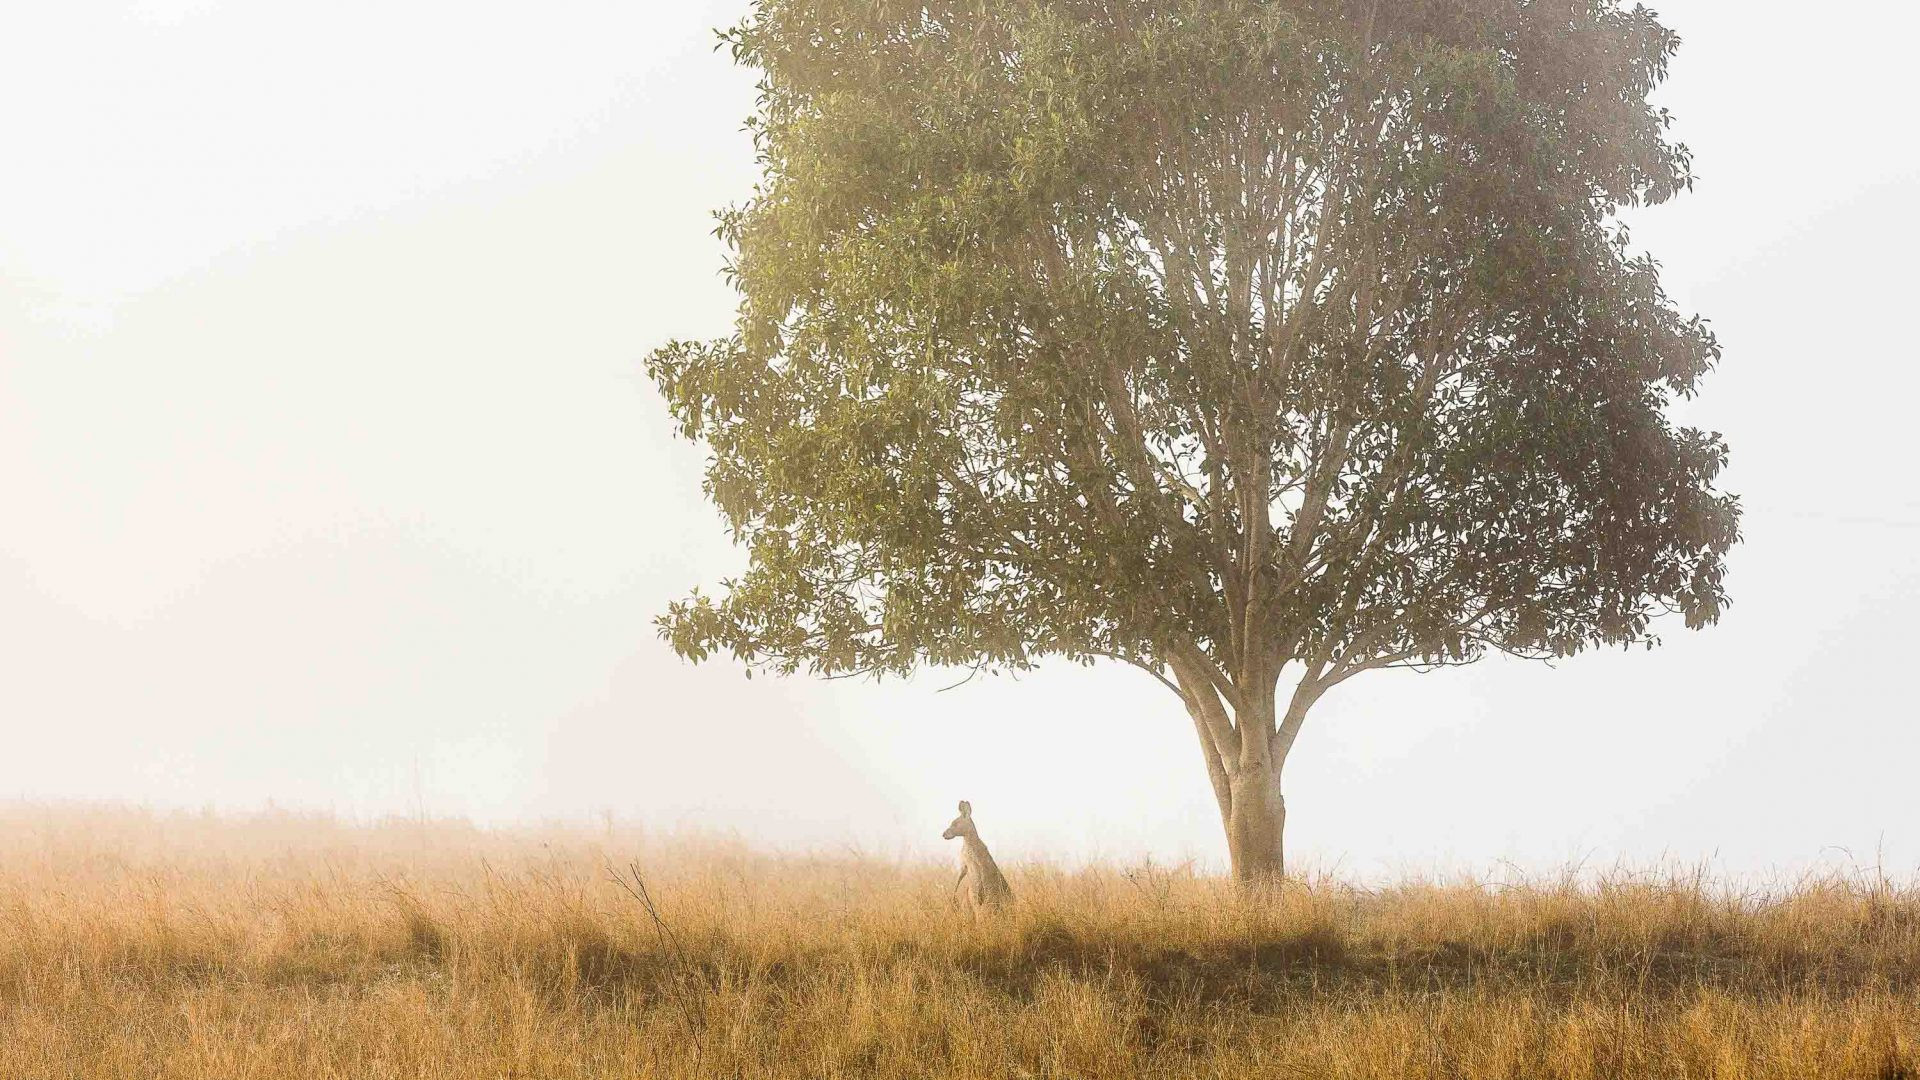 A kangaroo in the dry rural landscape of Australia.